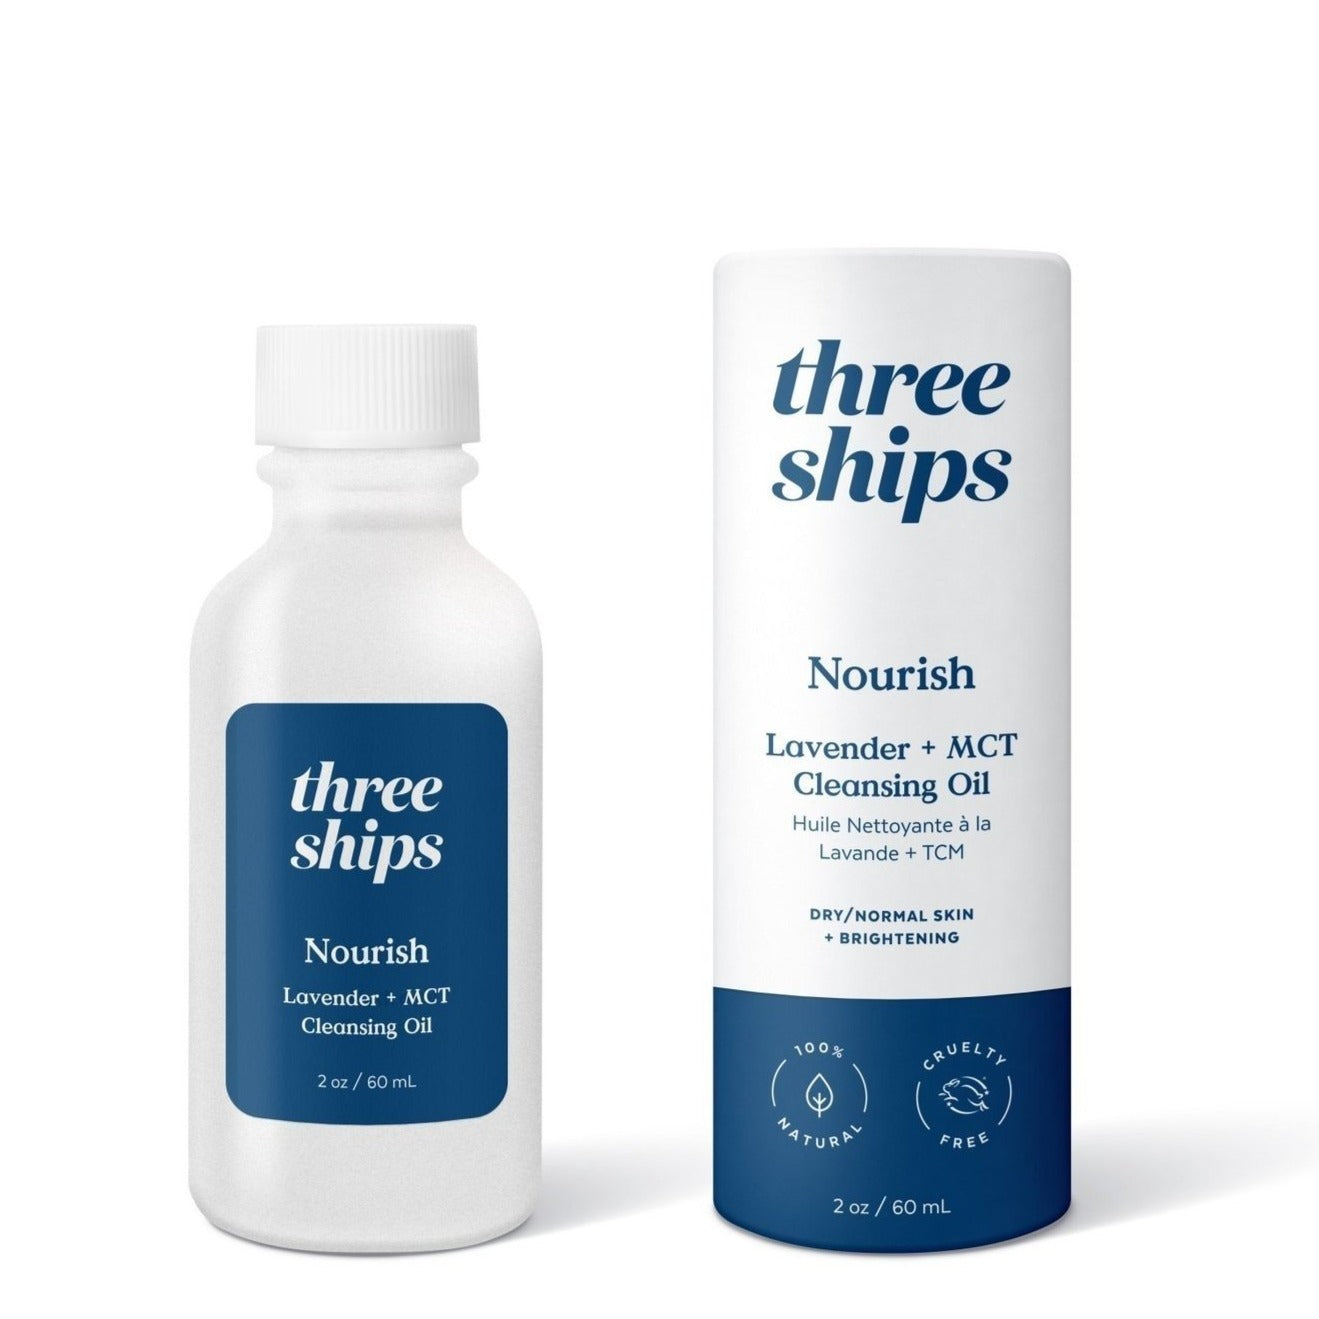 THREE SHIPS - NOURISH LAVENDER + MCT CLEANSING OIL